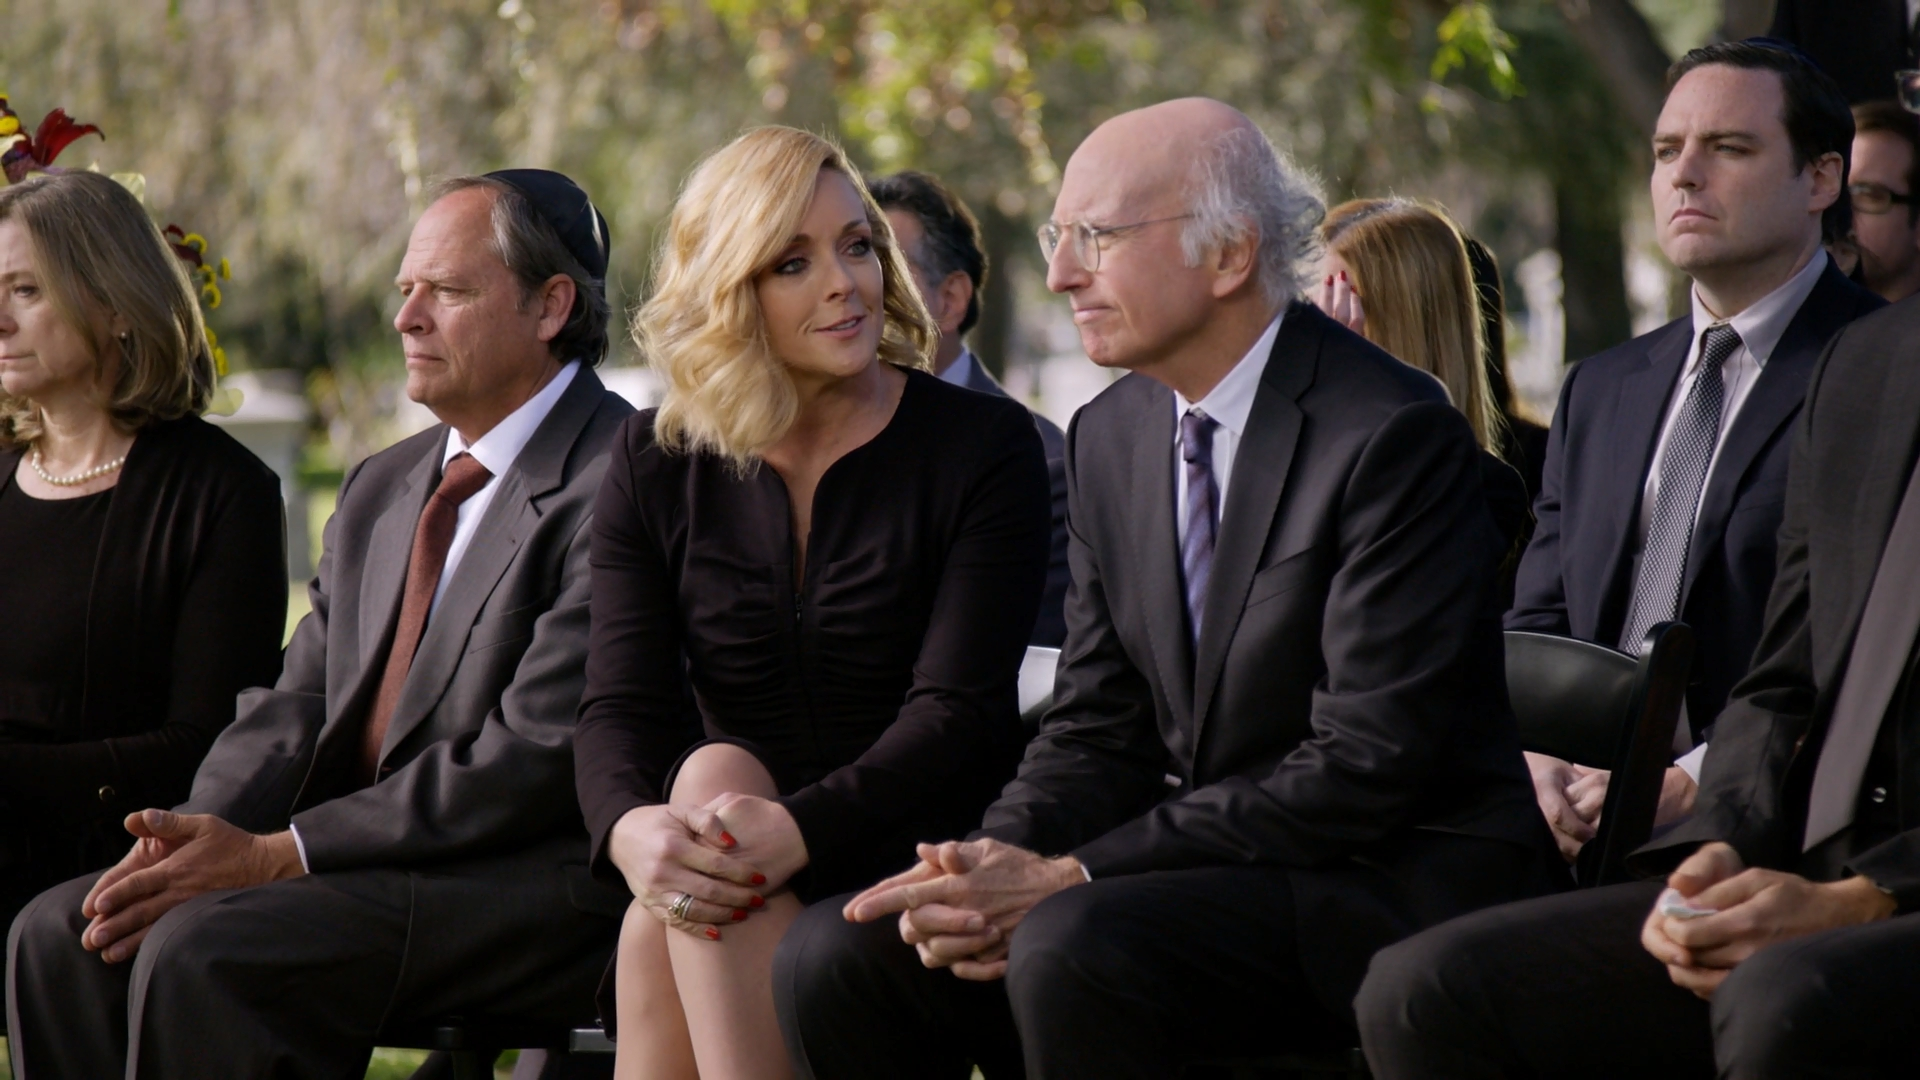 Curb Your Enthusiasm The Ugly Section Tv Episode 2020 Imdb